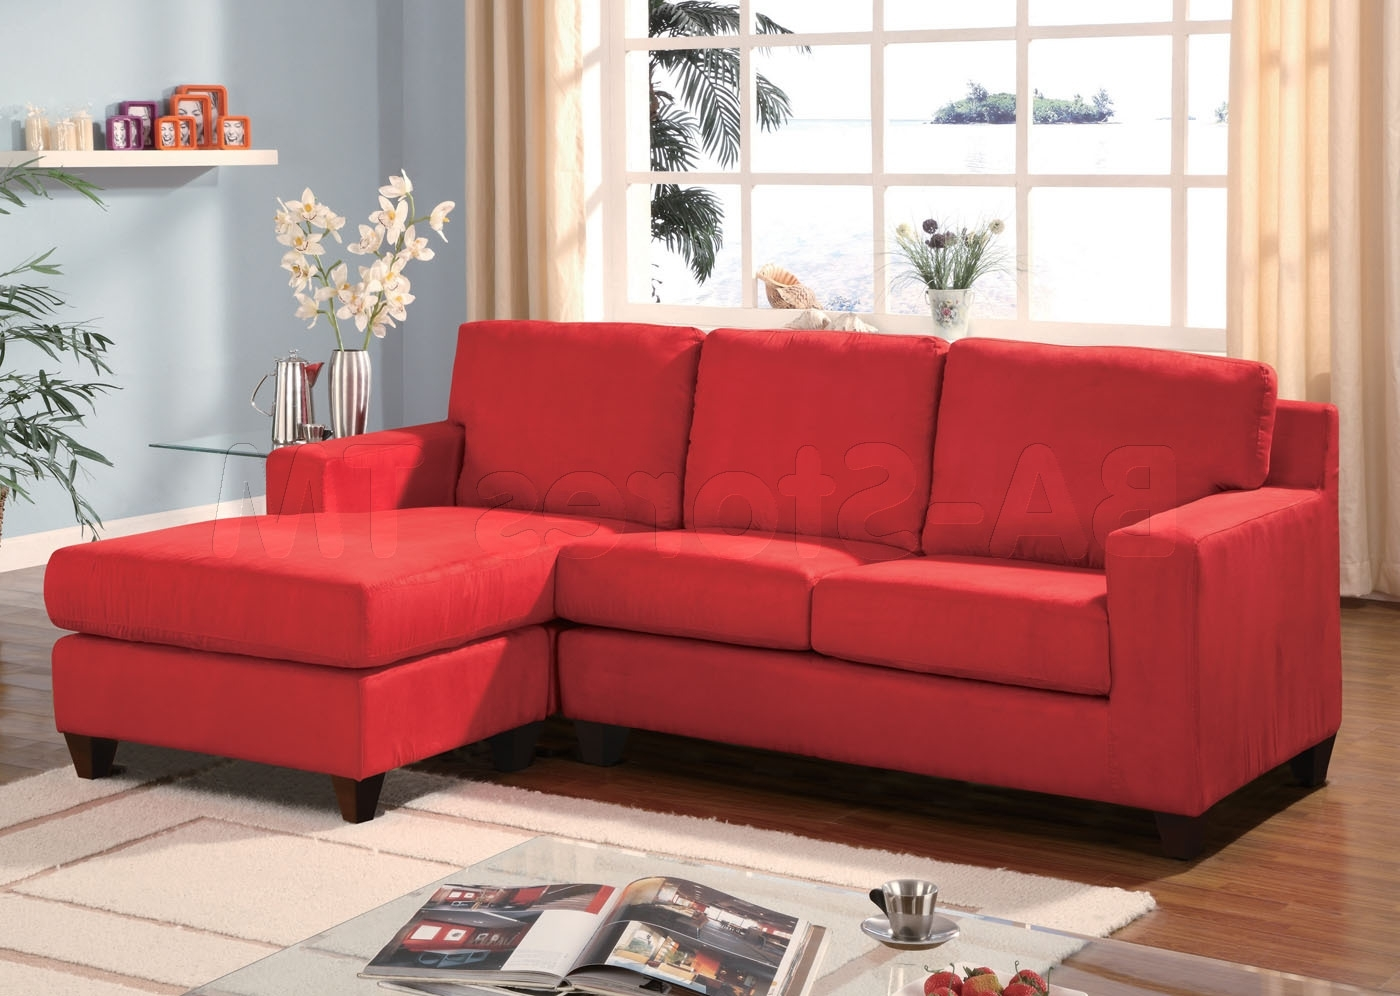 Famous Red Sectional Sofa For Newly Wed Couples Home – Furnitureanddecors In Red Sectional Sofas (View 5 of 20)